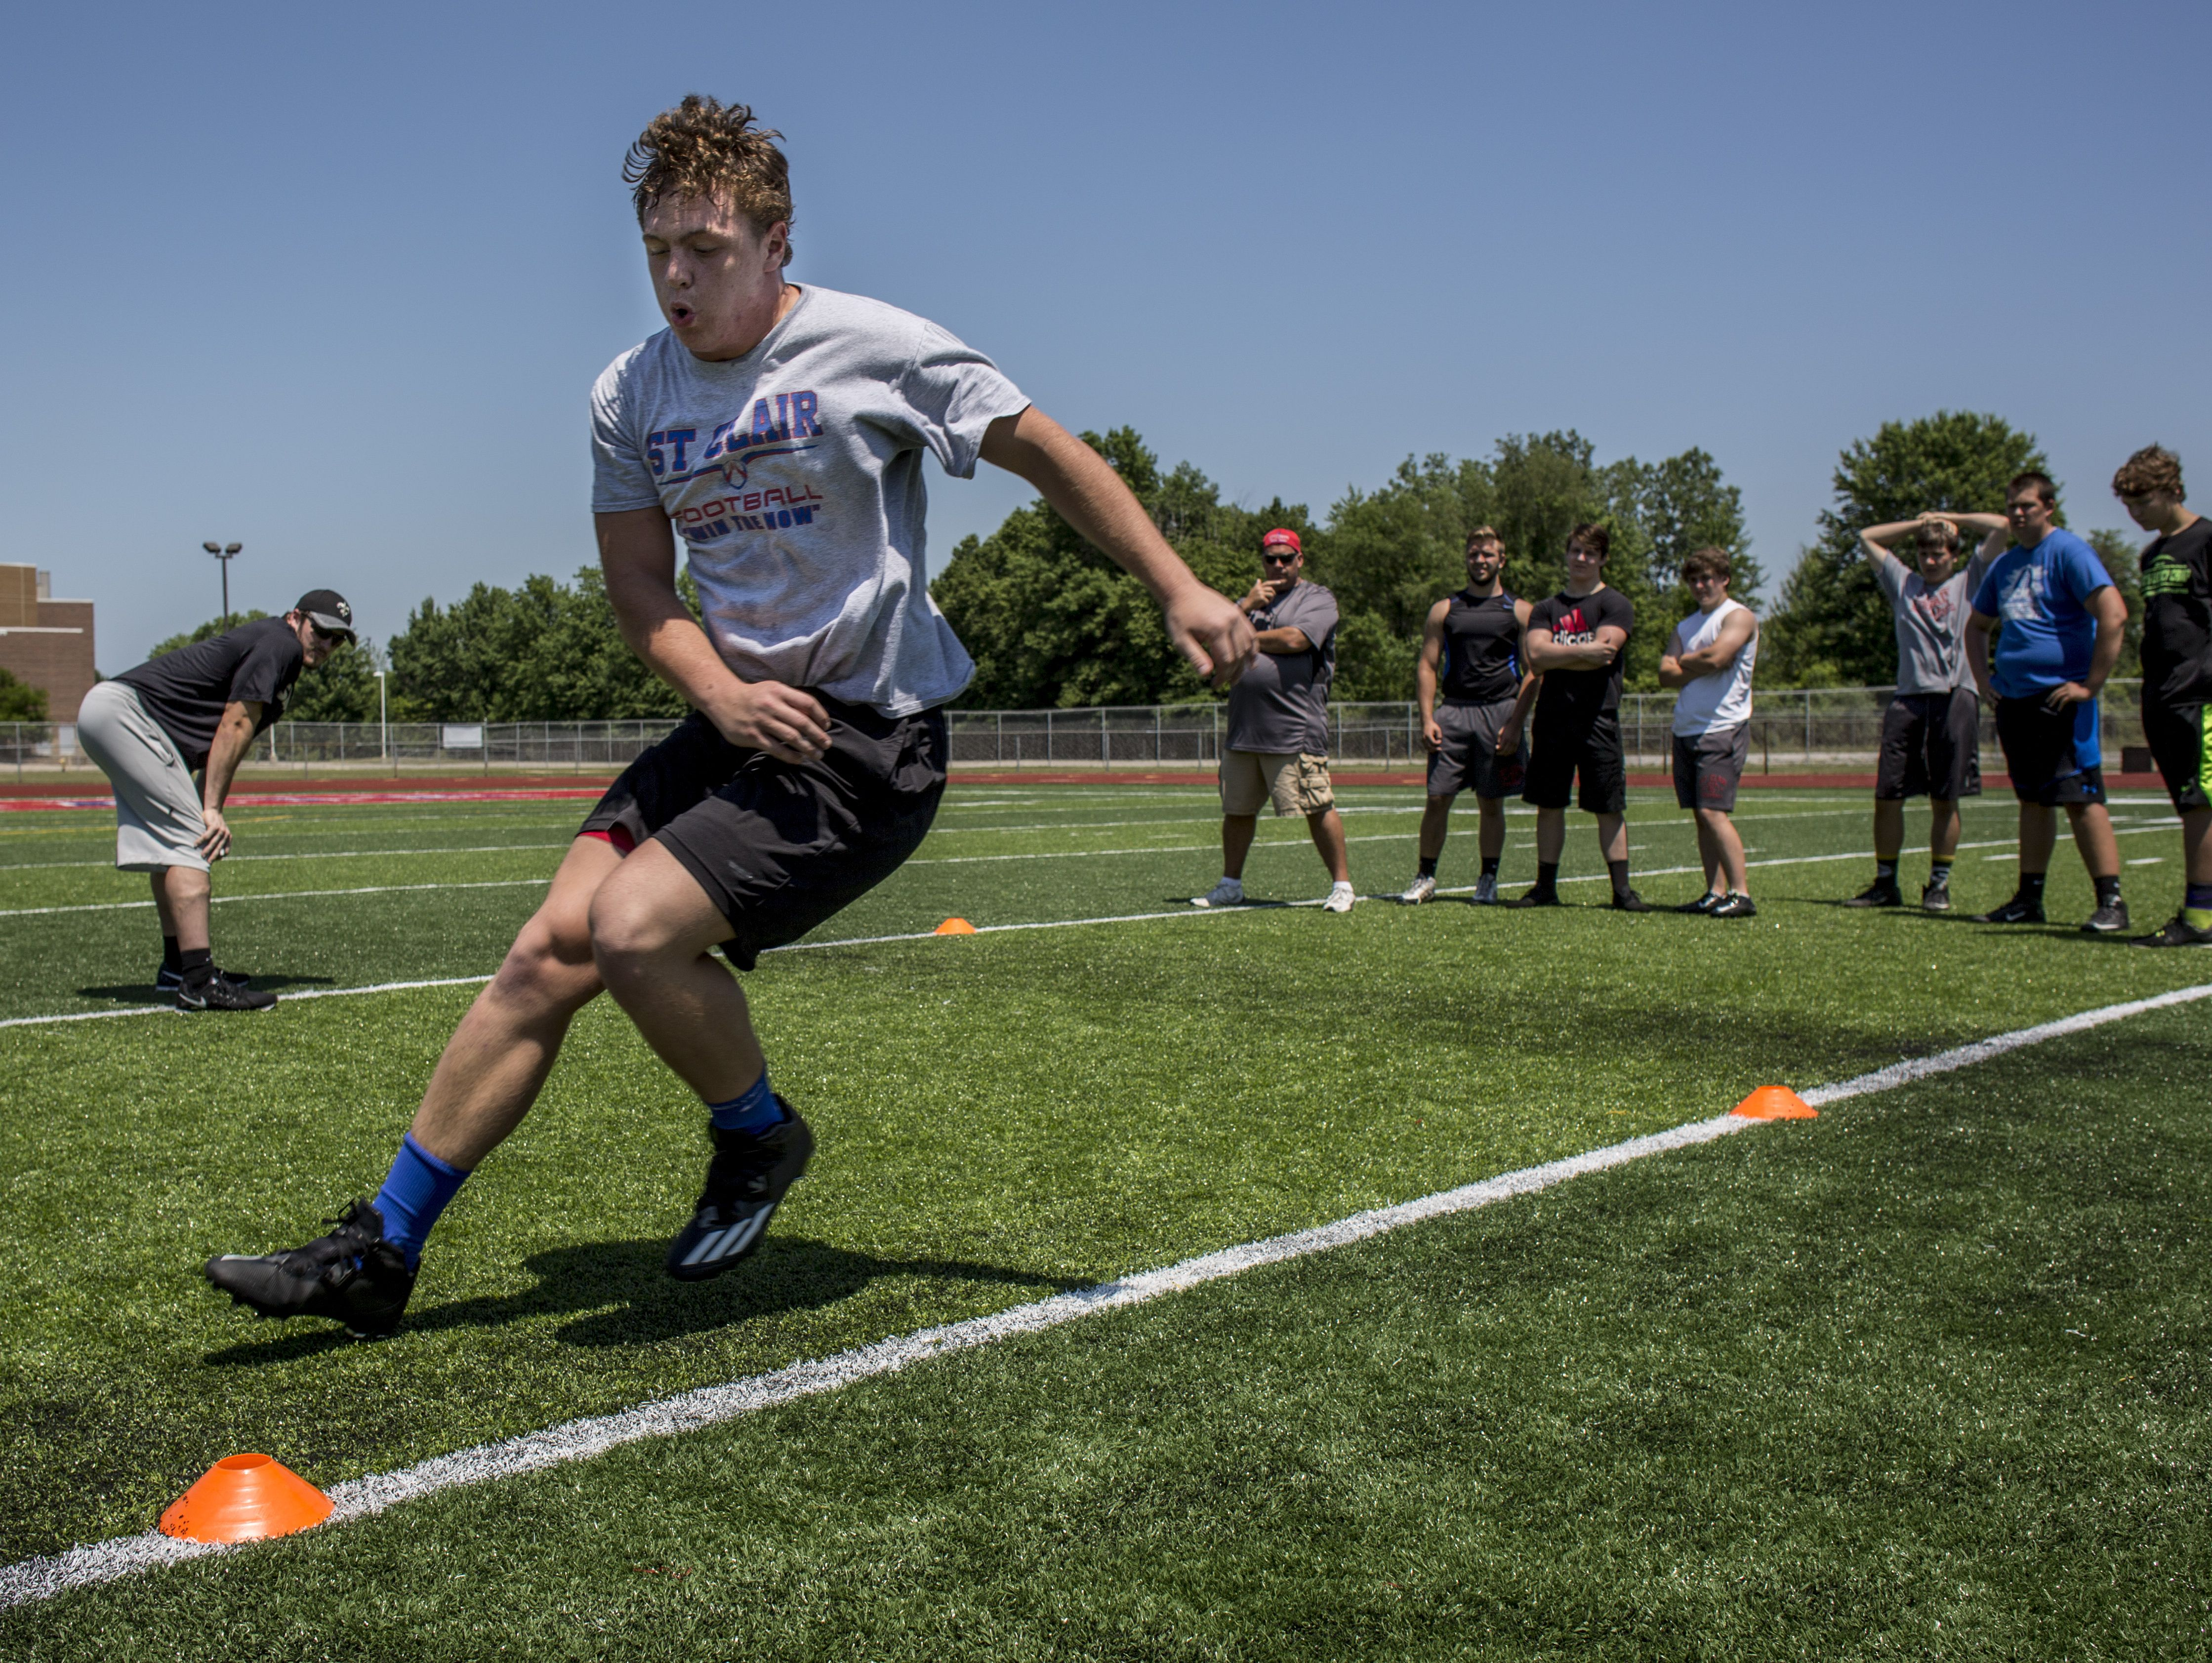 AJ Aguilo, 17, of St. Clair, works on agility with an L-drill during Lelito's Legacy Camp Friday, June 24, 2016 at the East China Stadium.